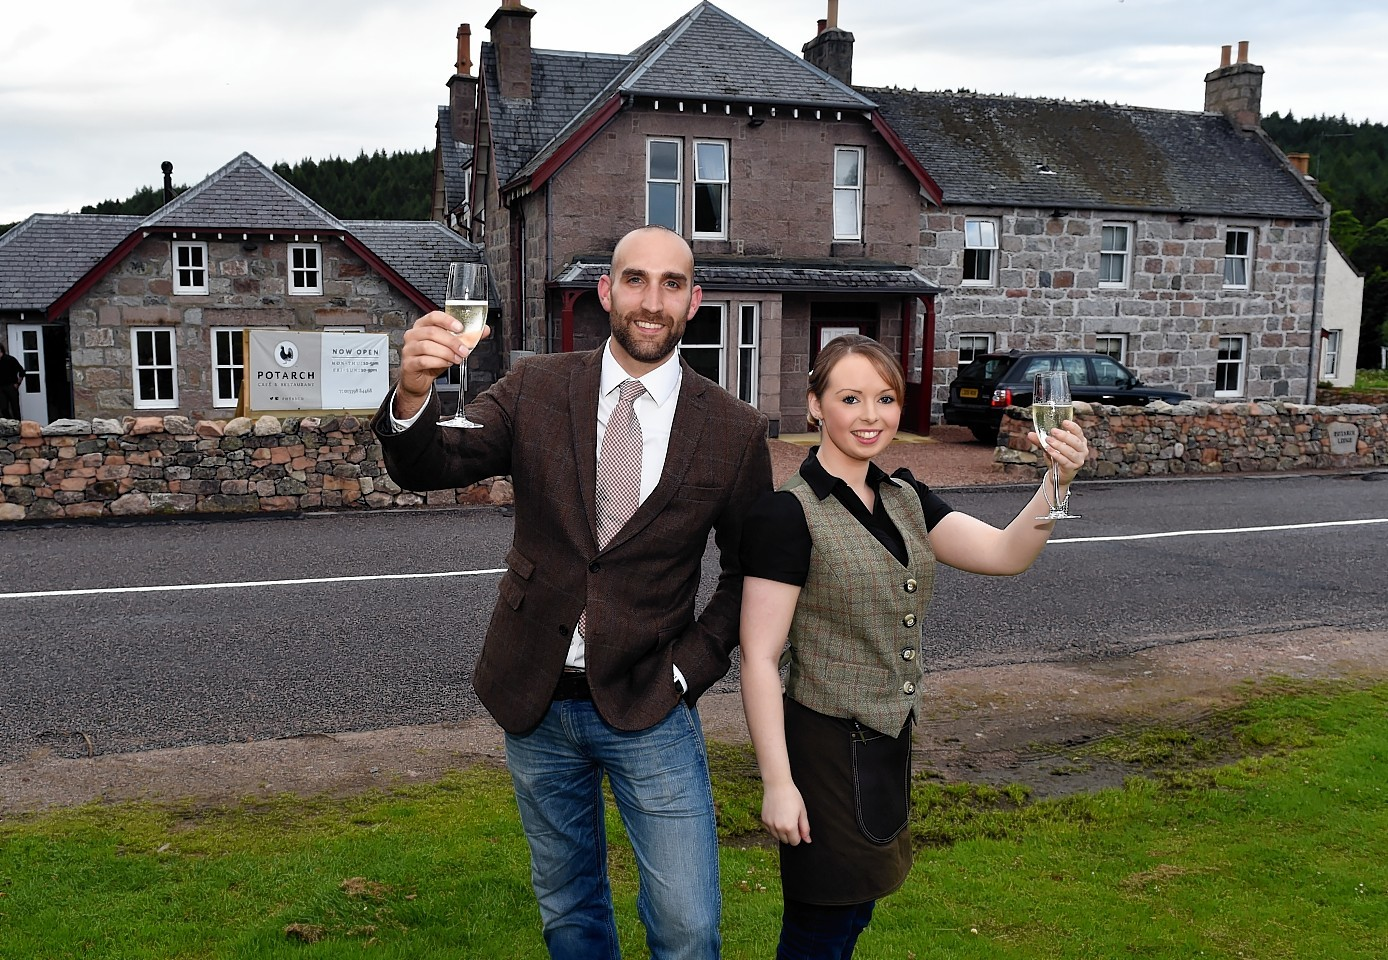 The Potarch Hotel officially opened after closing down for refurbishment. Property Manager Lewis Gray and restaurant manager Nicolle Stewart. Picture by COLIN RENNIE.